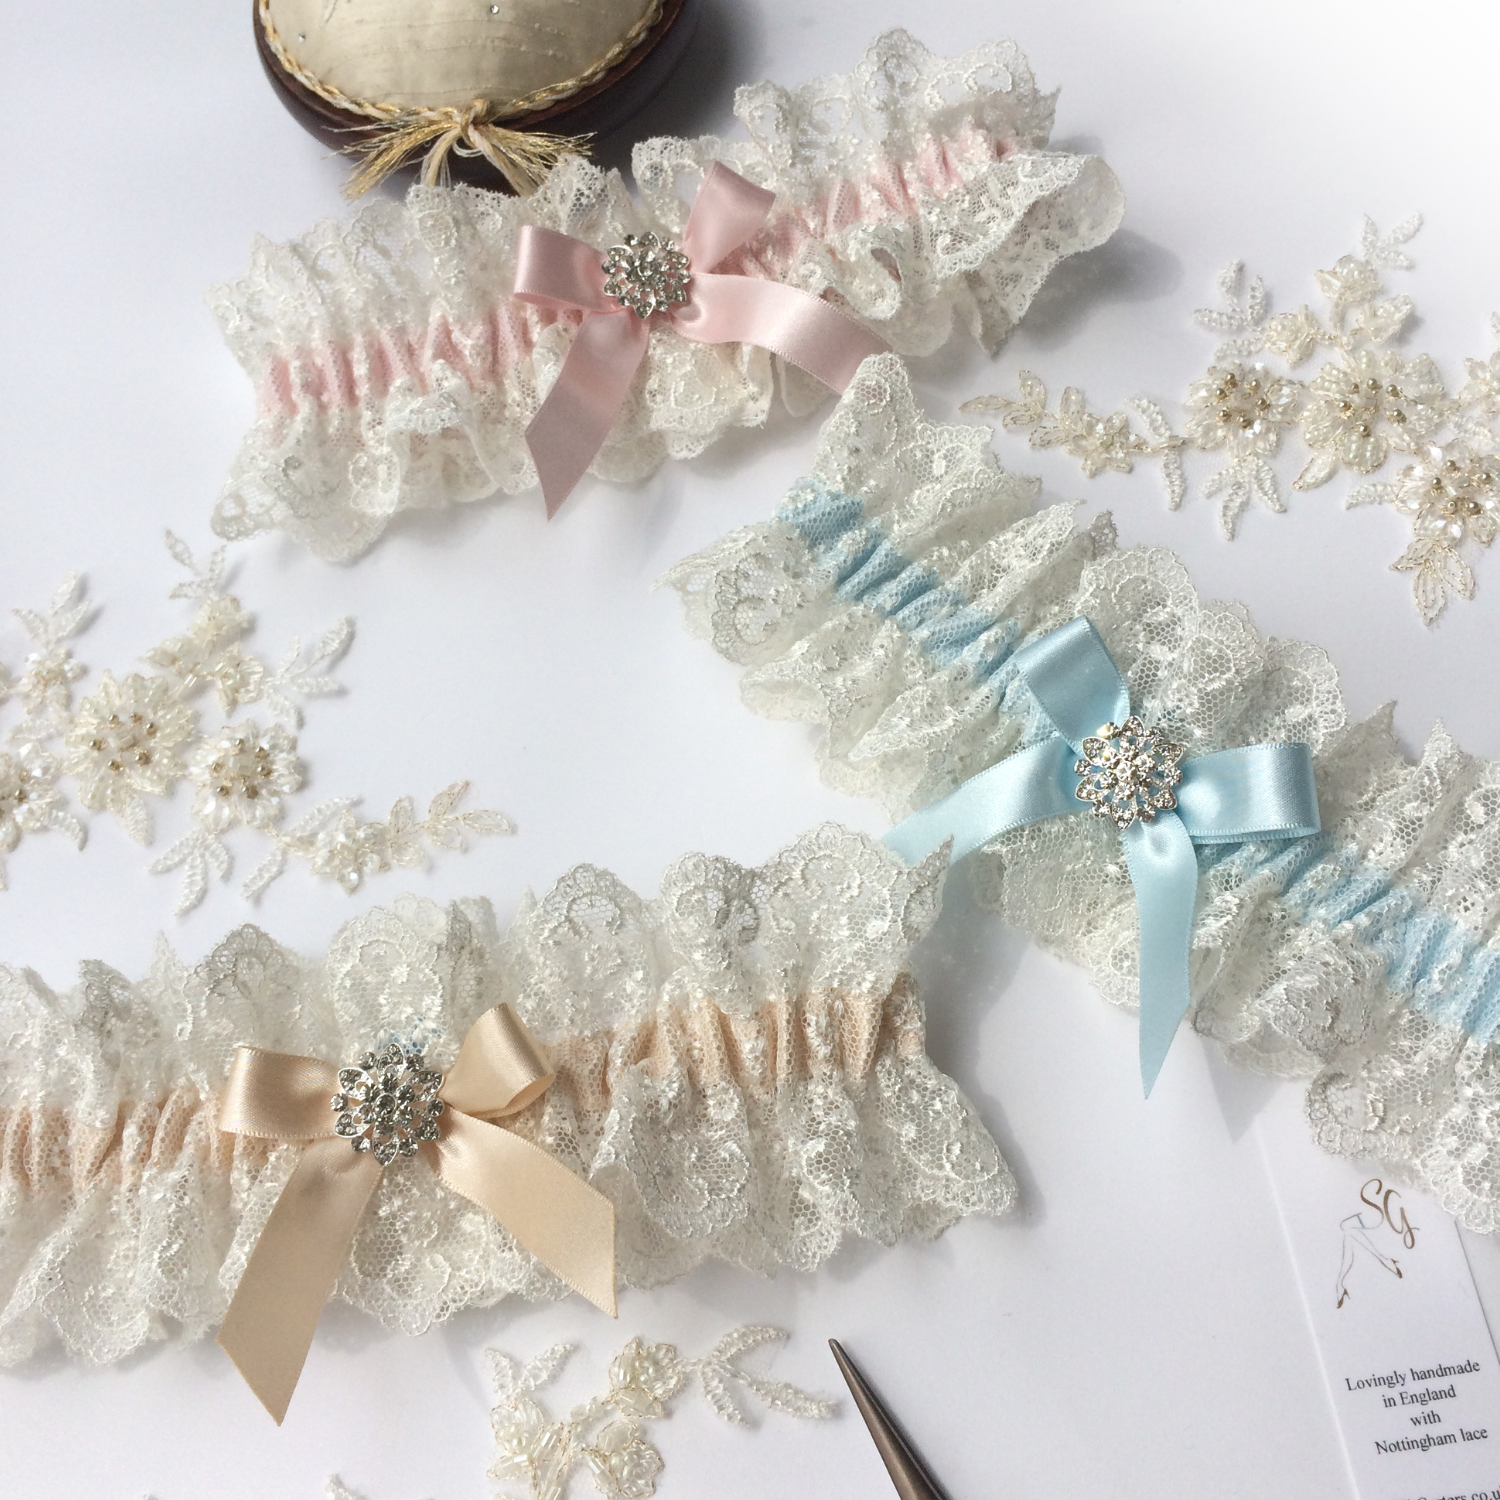 Baby blue, champagne and blush wedding garters cotton lace